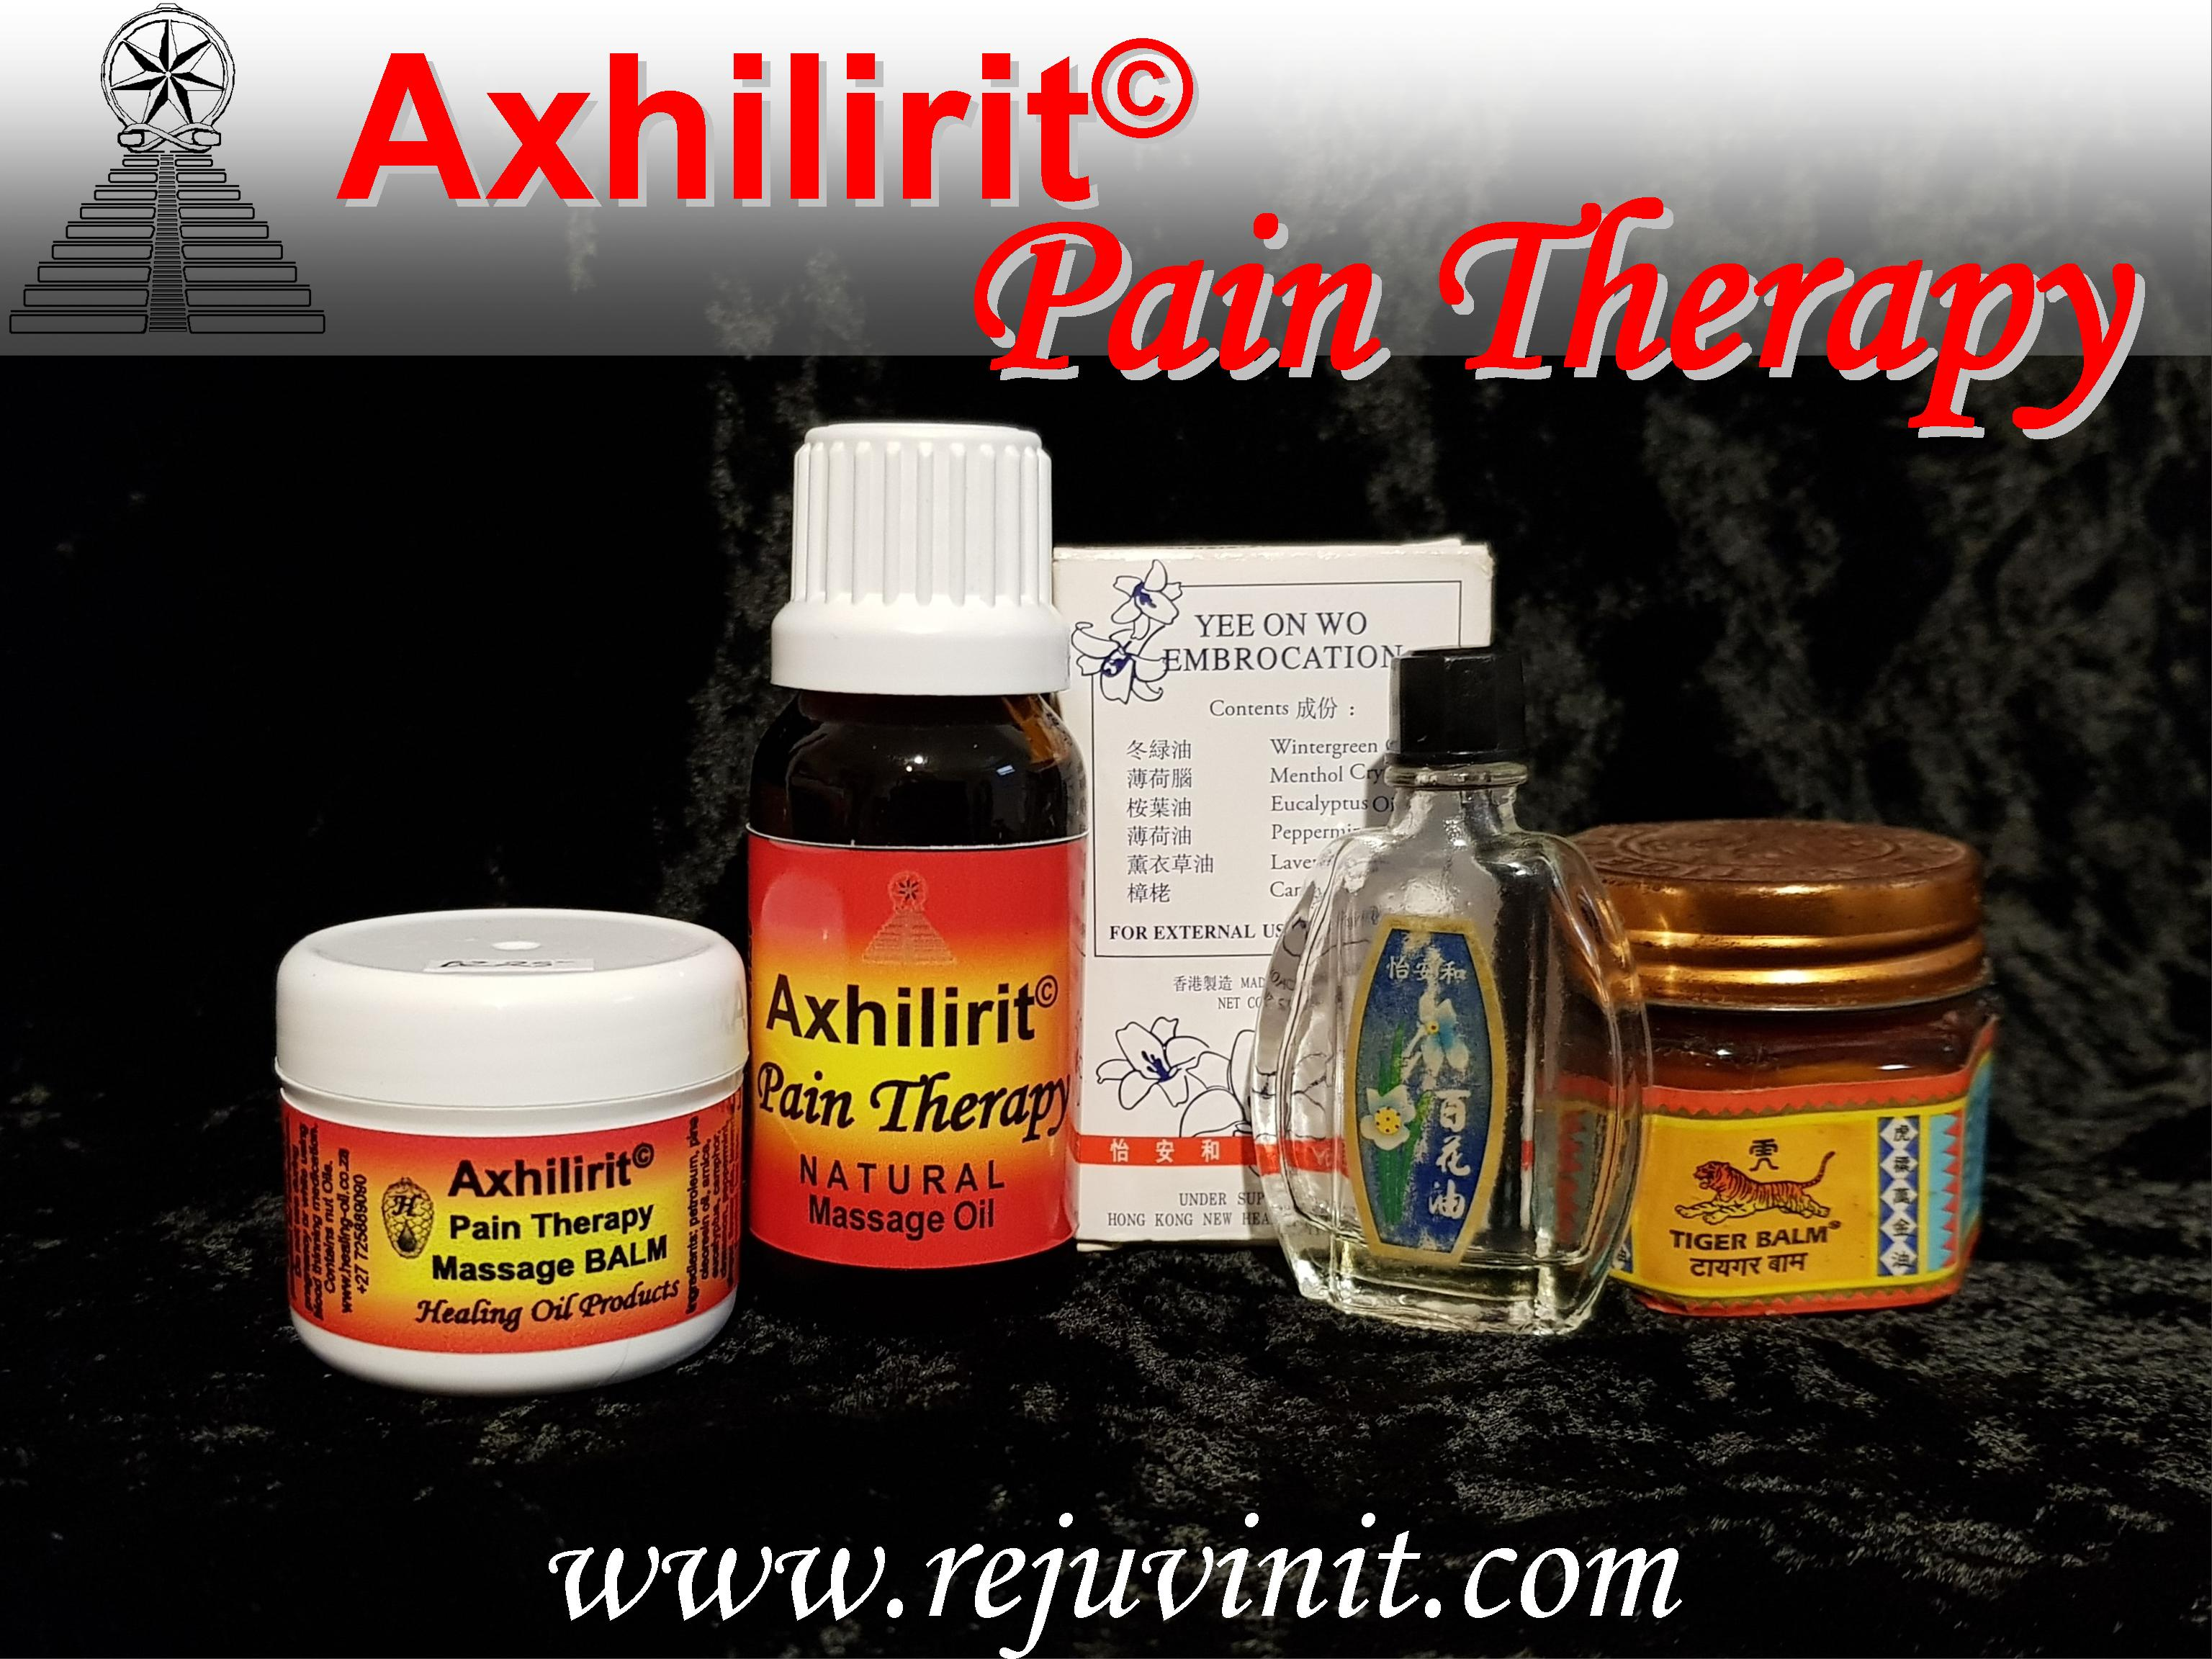 00 x 3 powerful Pain Therapy with Axhilirit